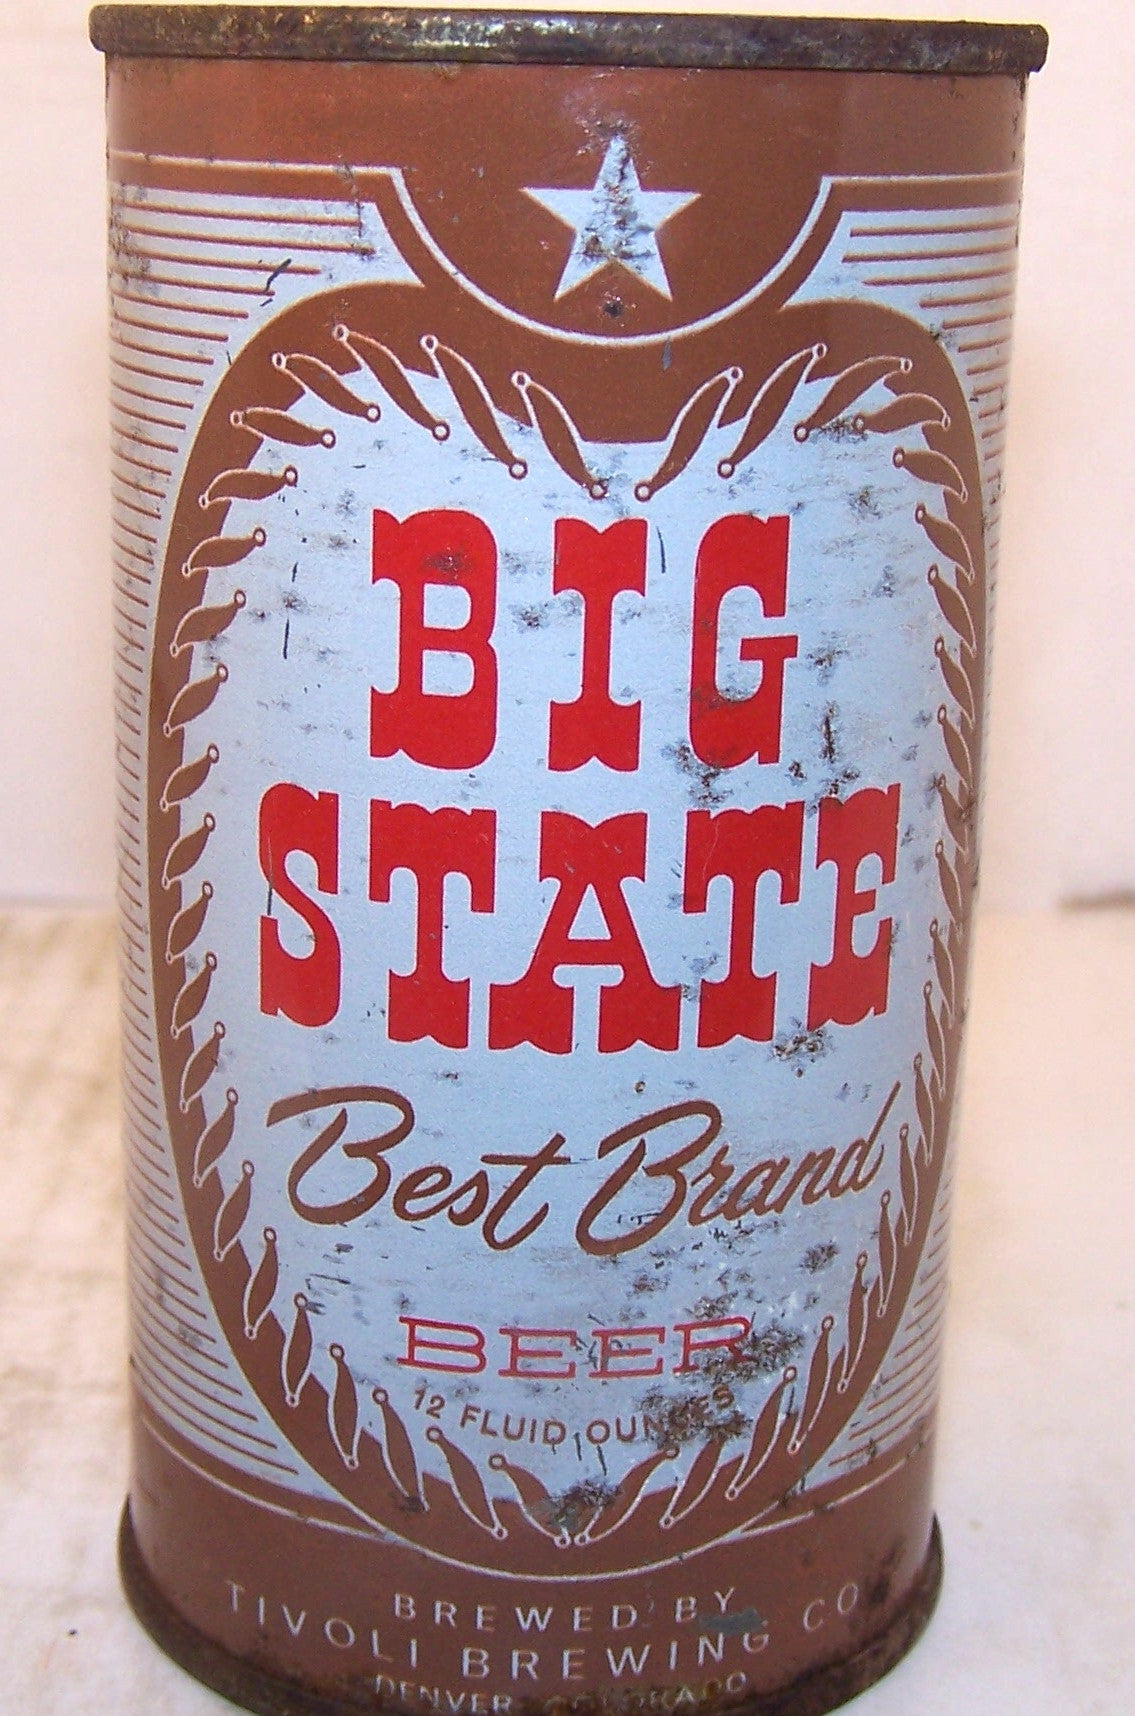 Big State Best Brand Beer, USBC 37-10, Grade 2+